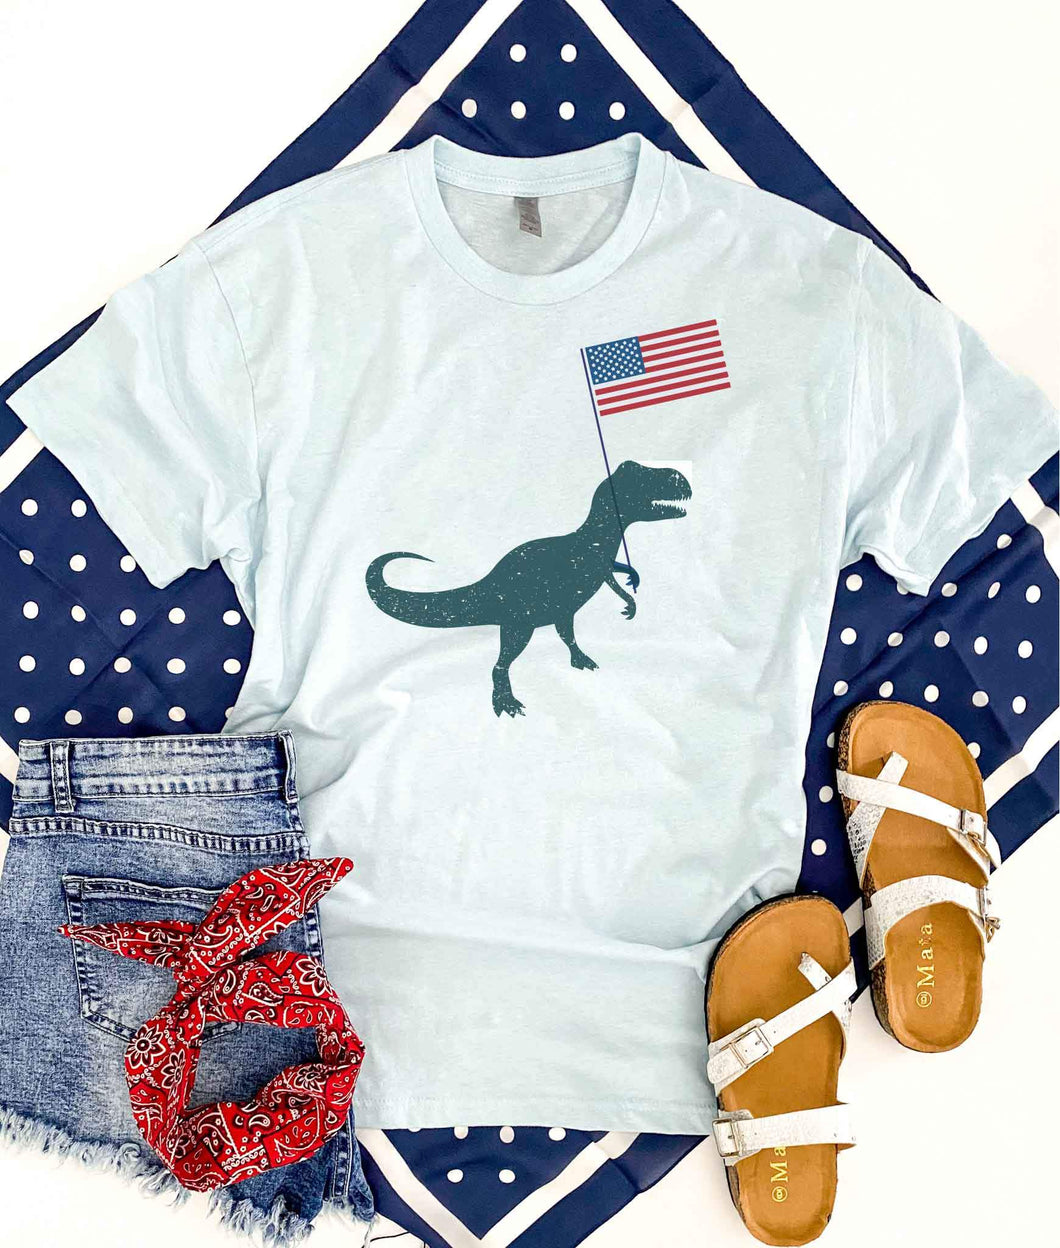 Patriotic T-rex tee Short sleeve patriotic tee Bella Canvas 3001